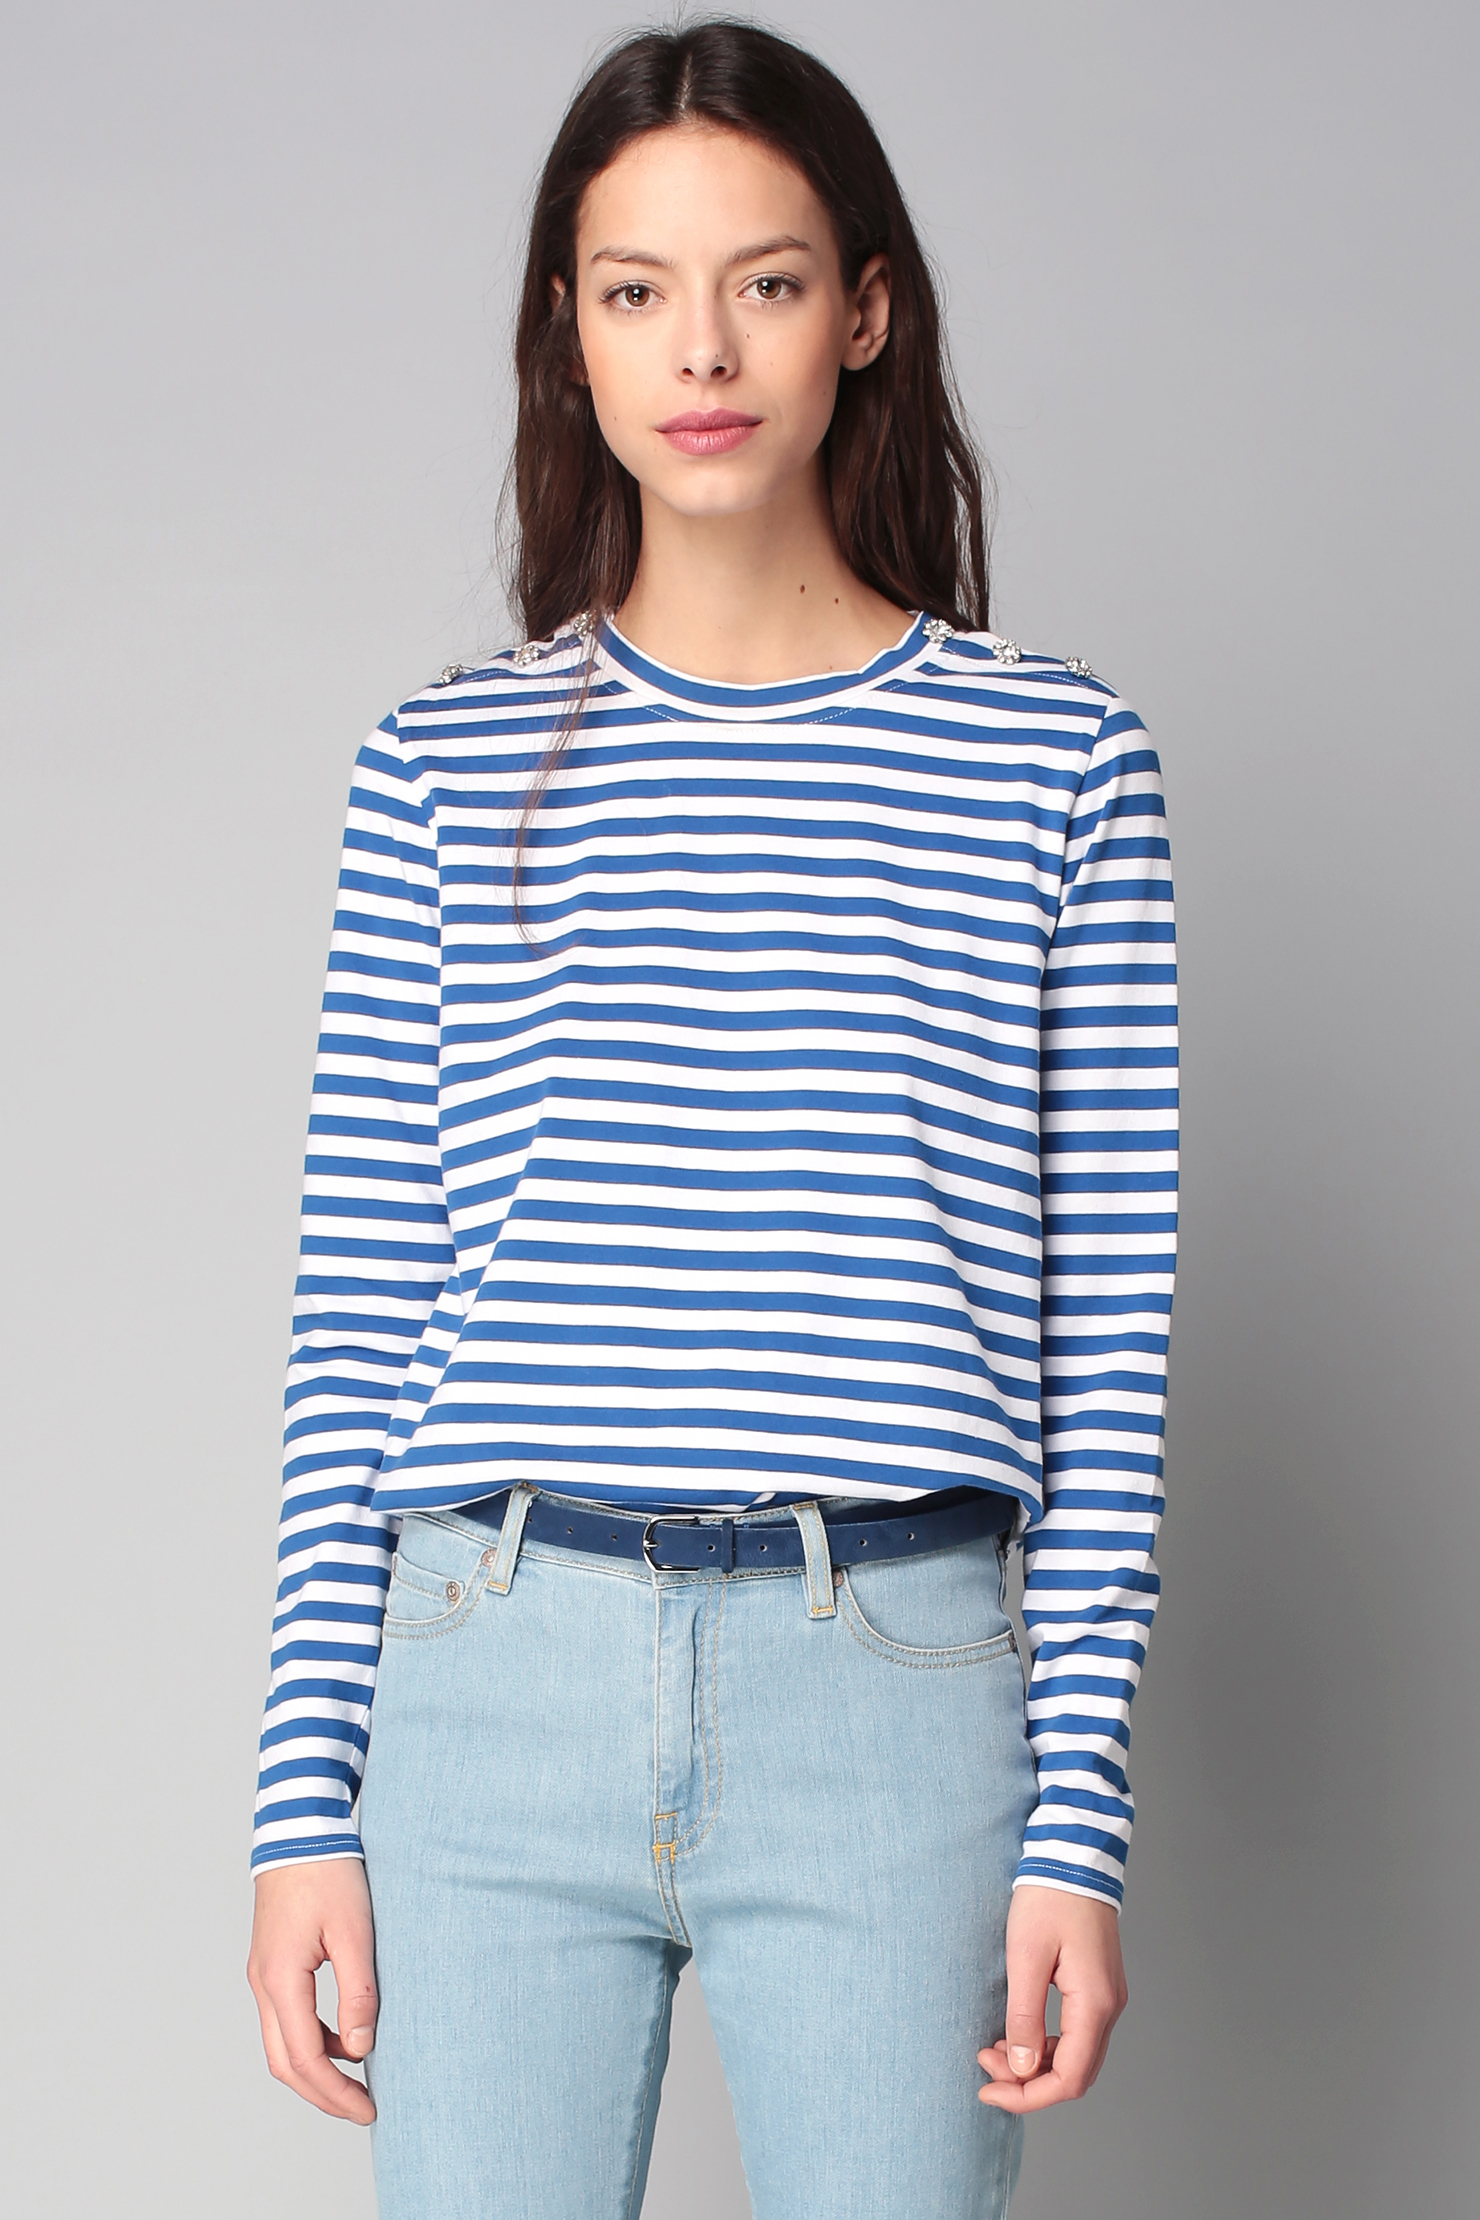 Find long-sleeve blue tops at ShopStyle. Shop the latest collection of long-sleeve blue tops from the most popular stores - all in one place.